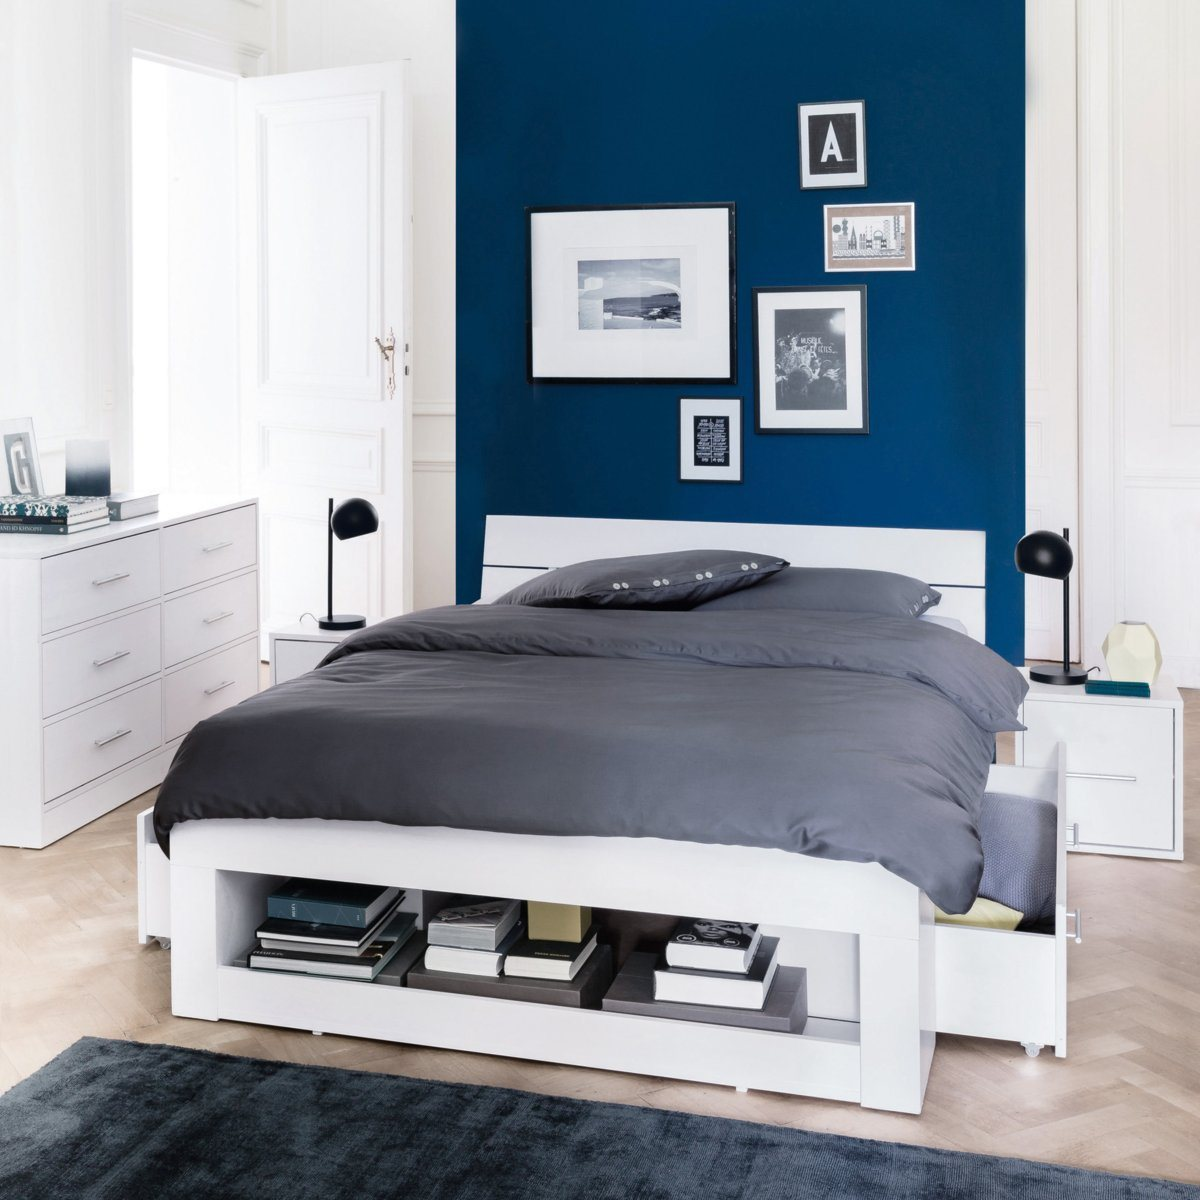 best chambre bleu petrole photos design trends 2017